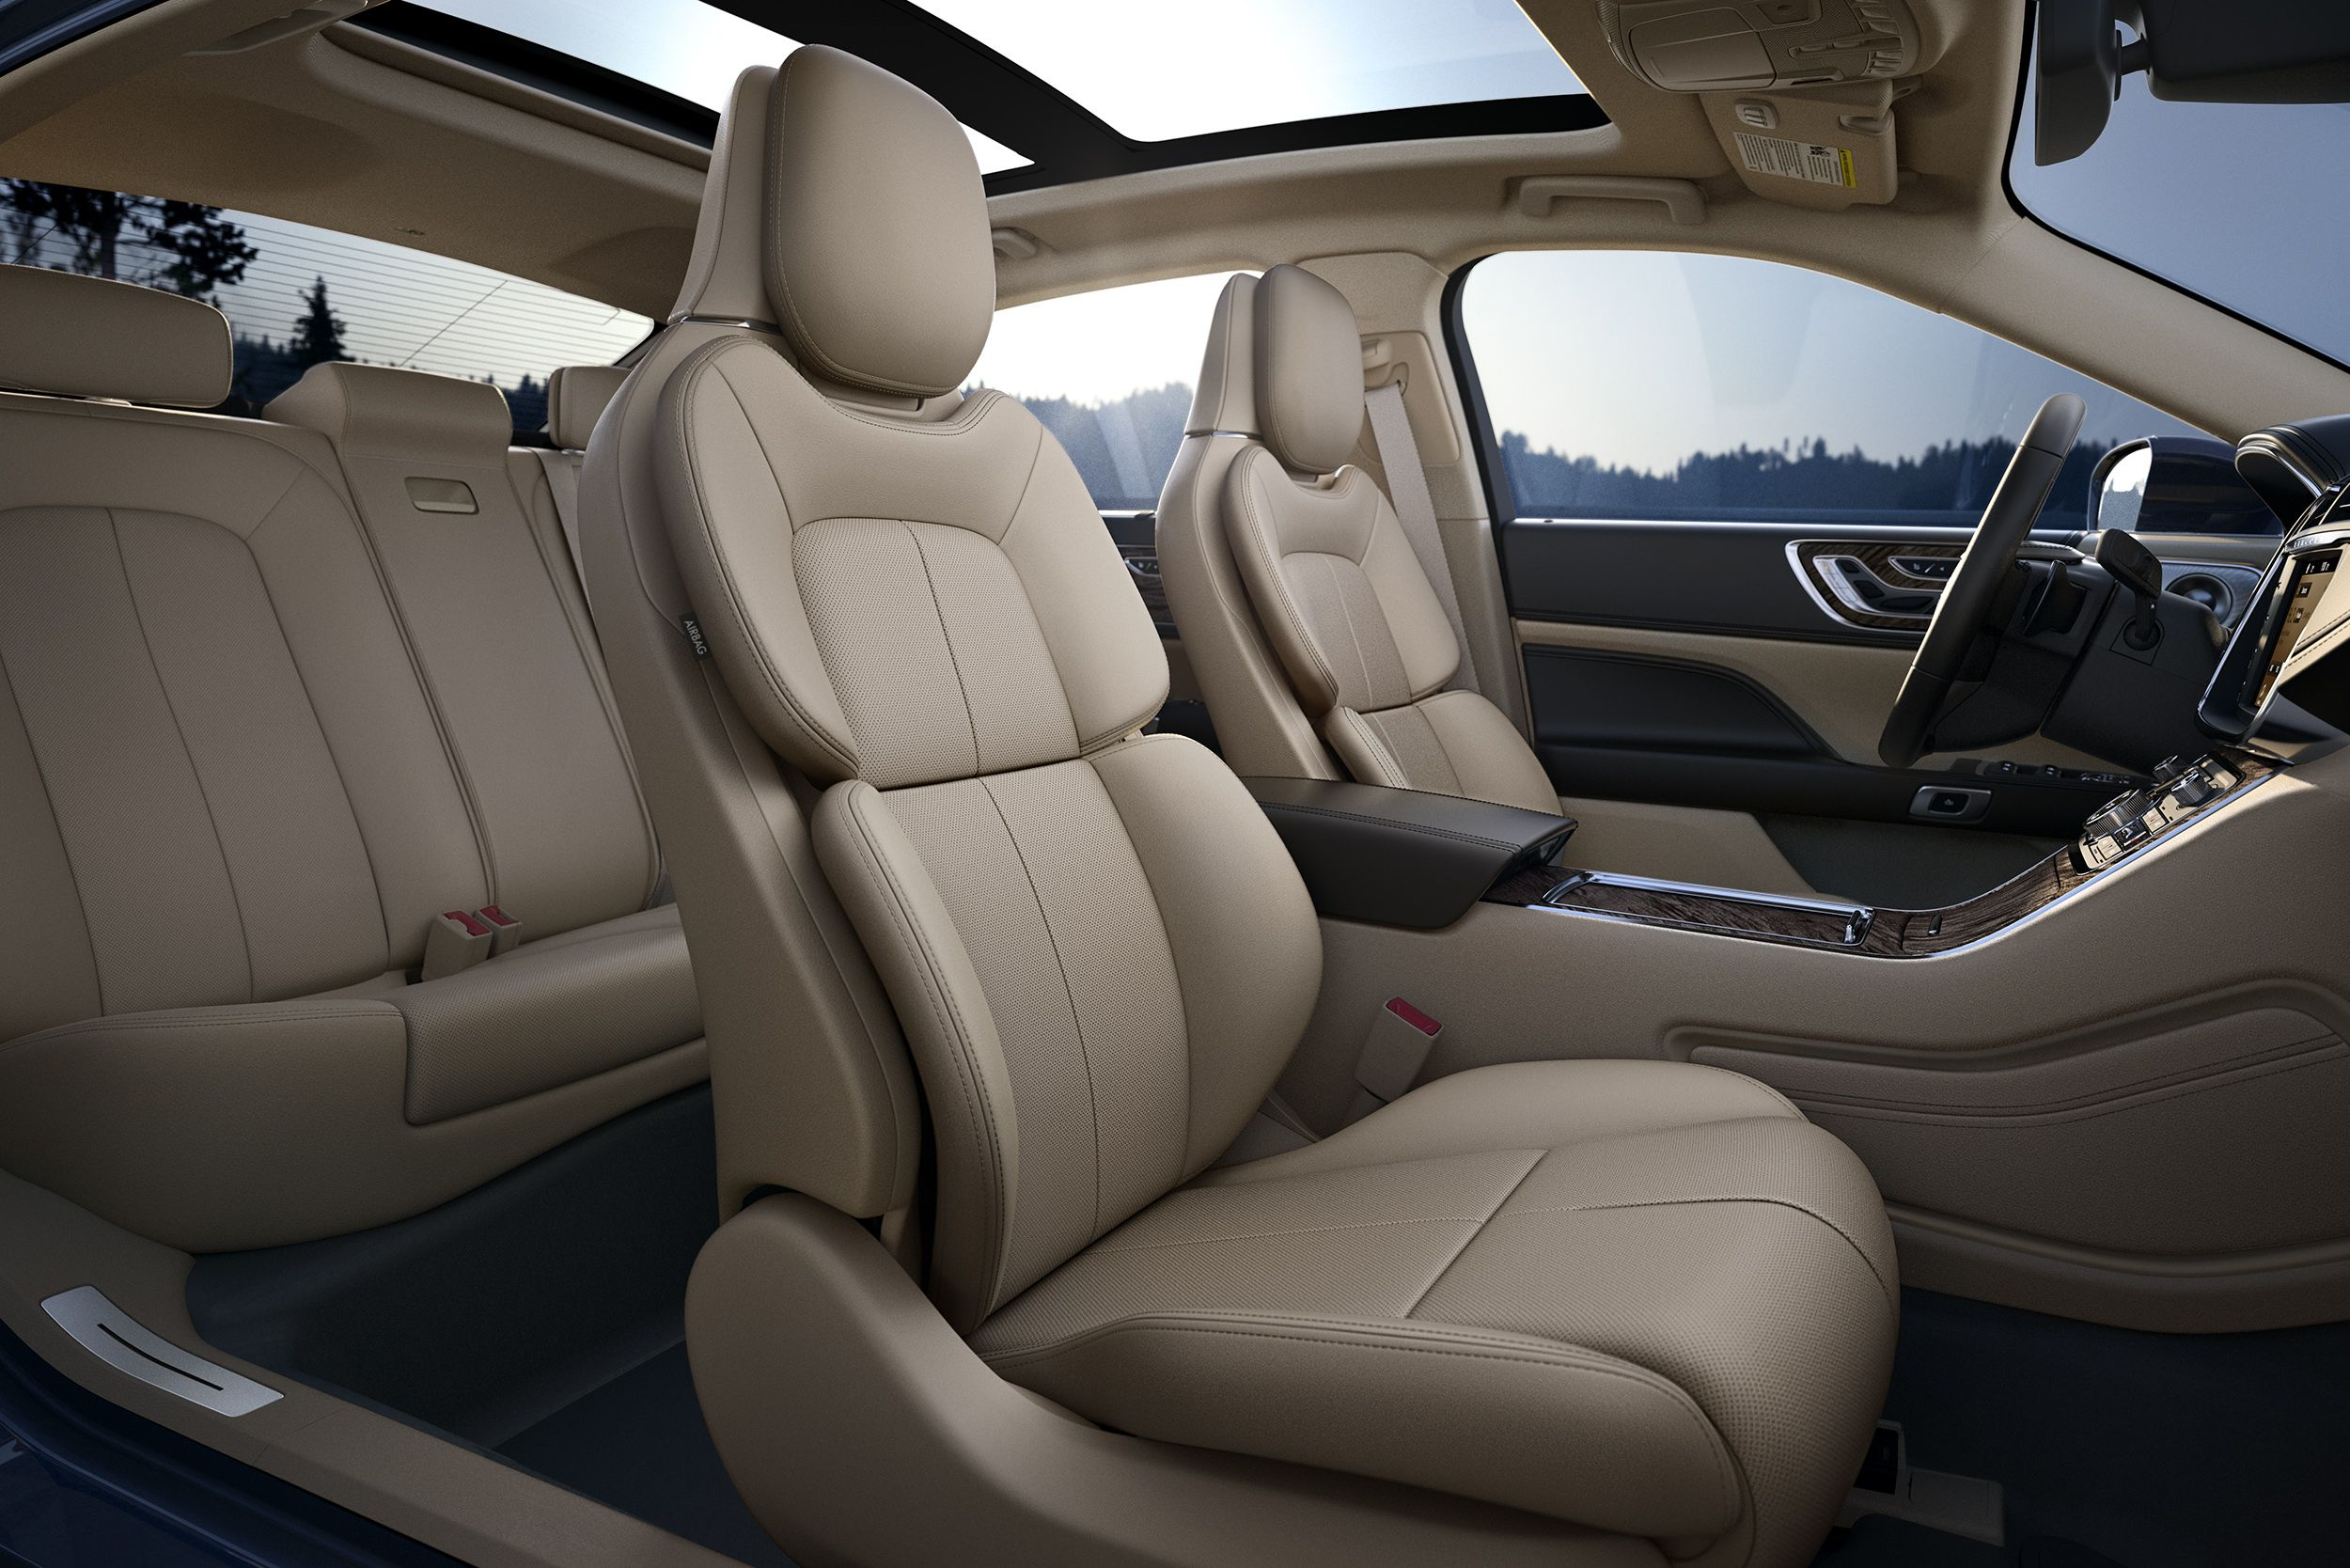 The 2017 Continentals Perfect Position Seat Touts Thigh Extenders And Thirty Ways Of Movement That Can Be Adjusted For Maximum Comfort HowContinental